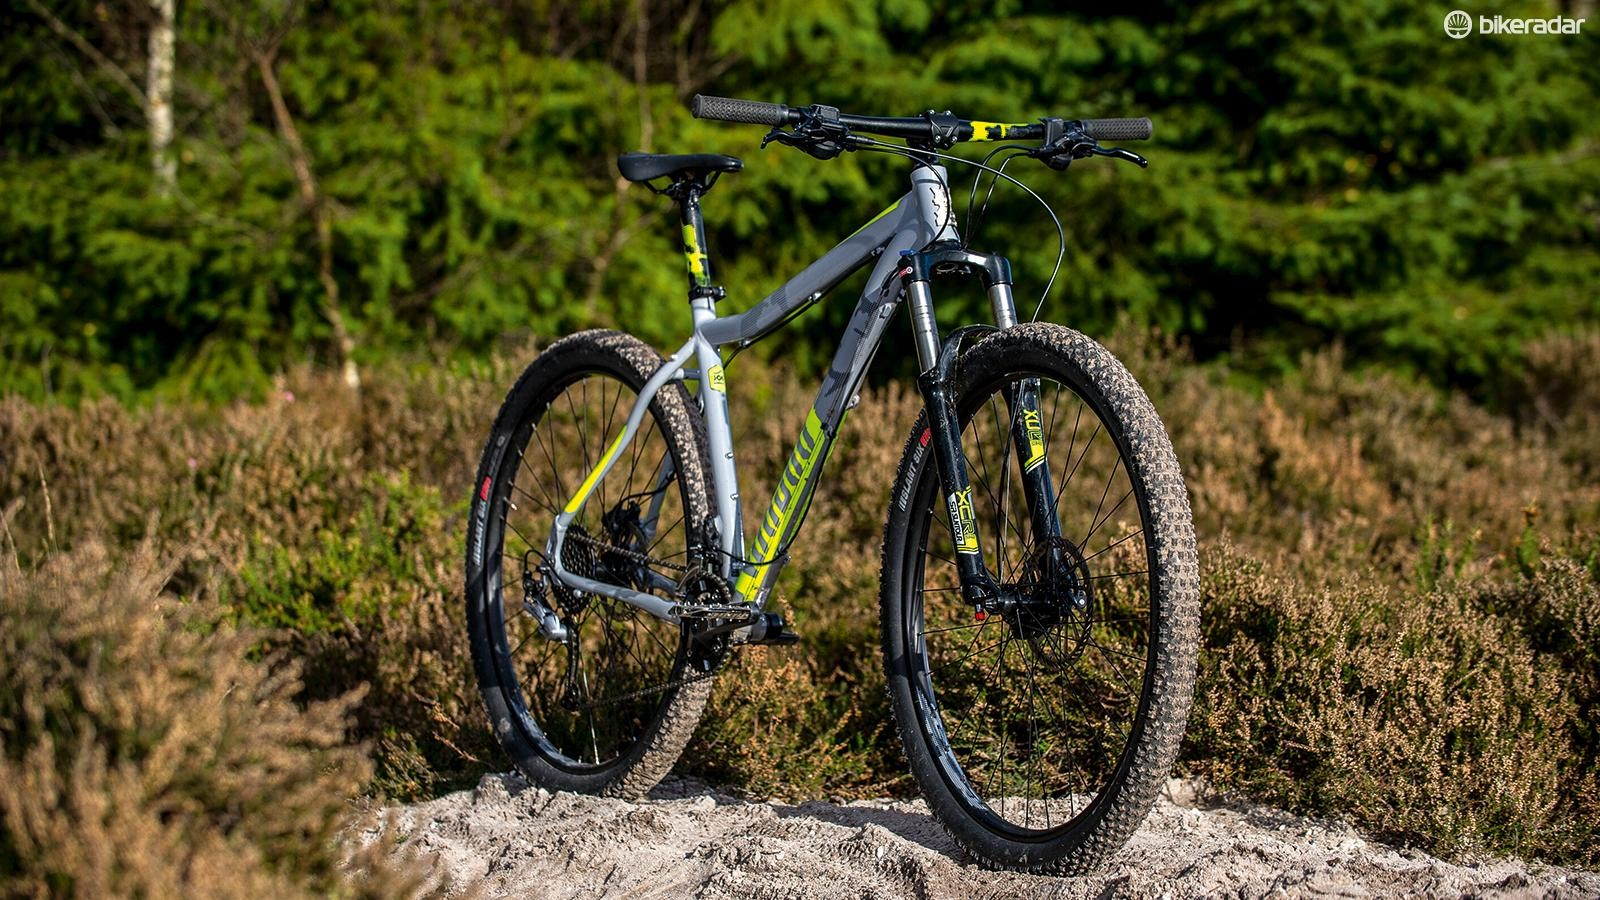 Kenda's Slant Six tyres are fast and grippier than they look, but slippery when it gets damp